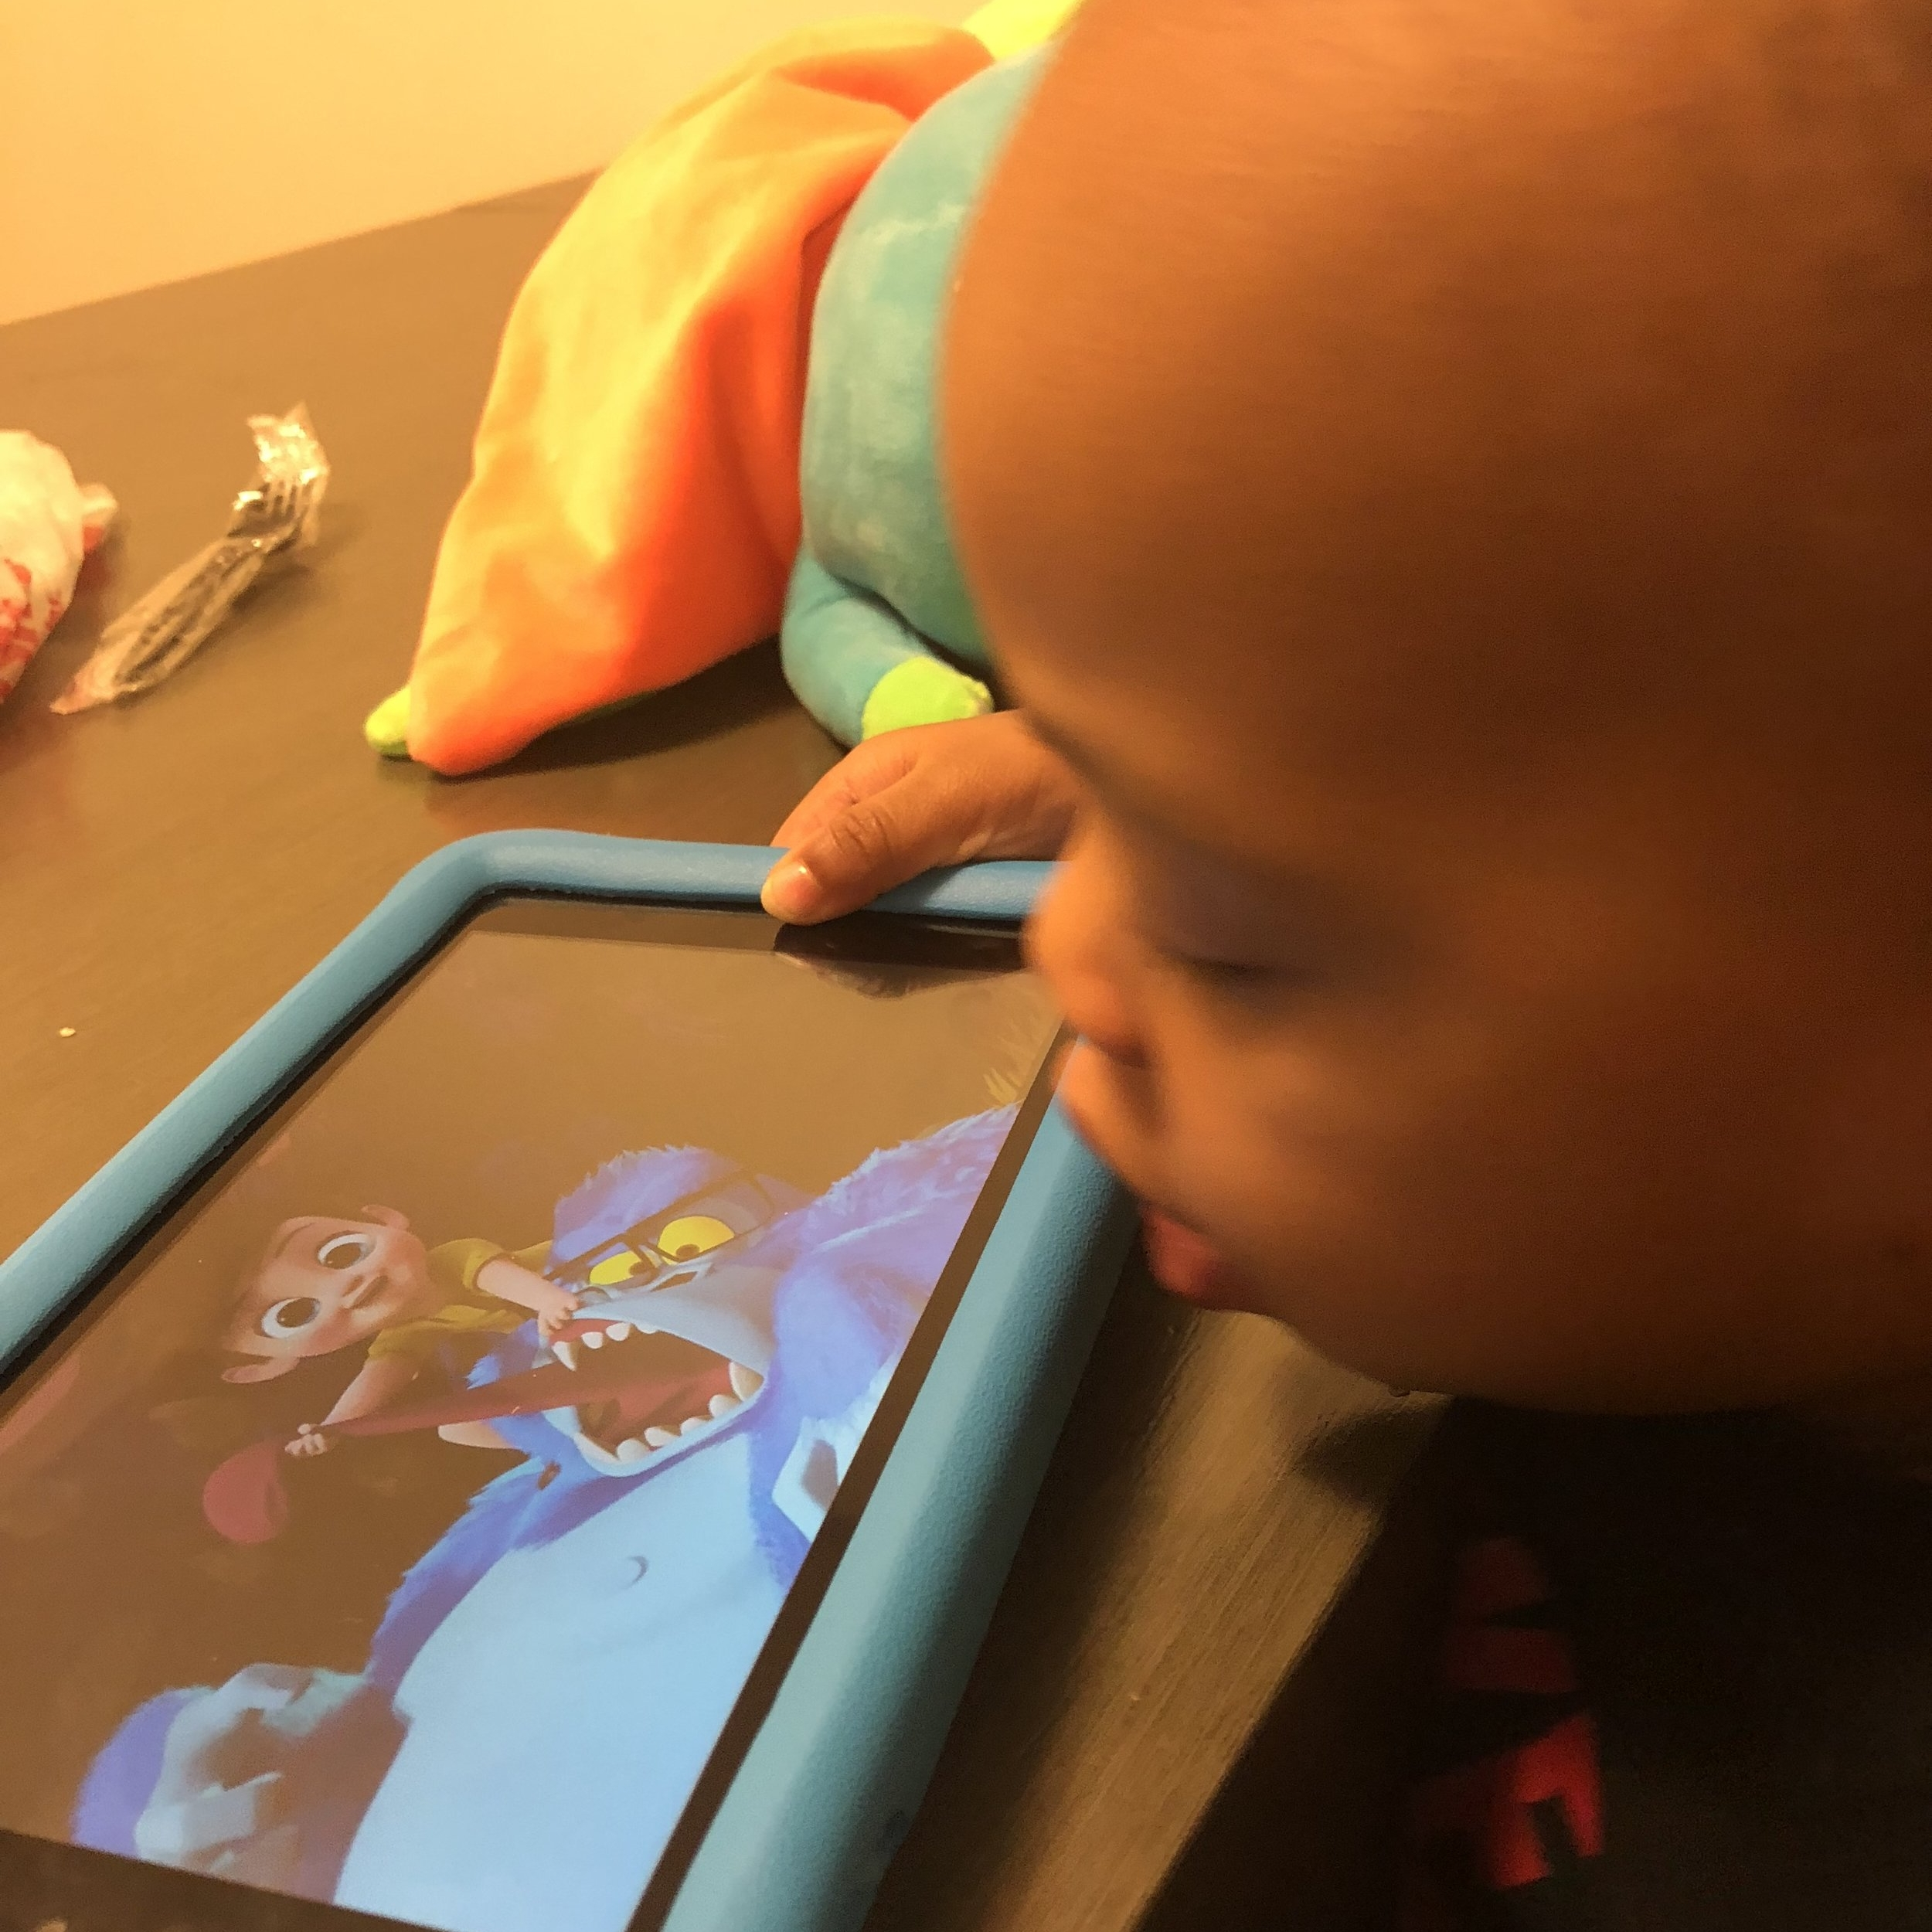 Warming up the new Amazon Fire for Kids.